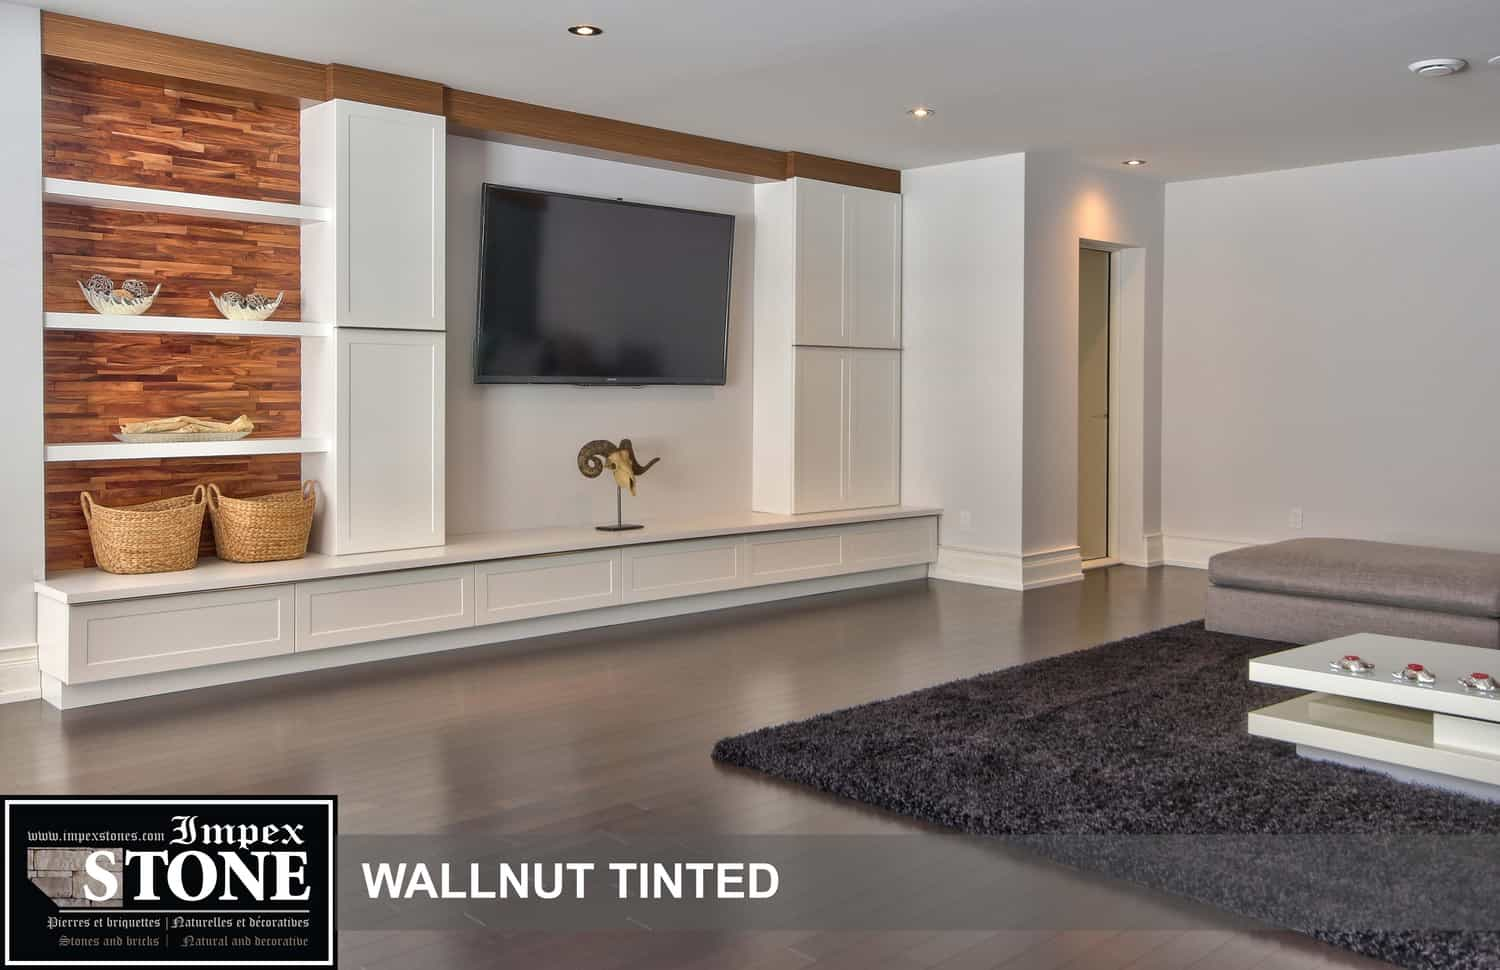 wall-paneling-tinted walnut-living2-logo-web (2)